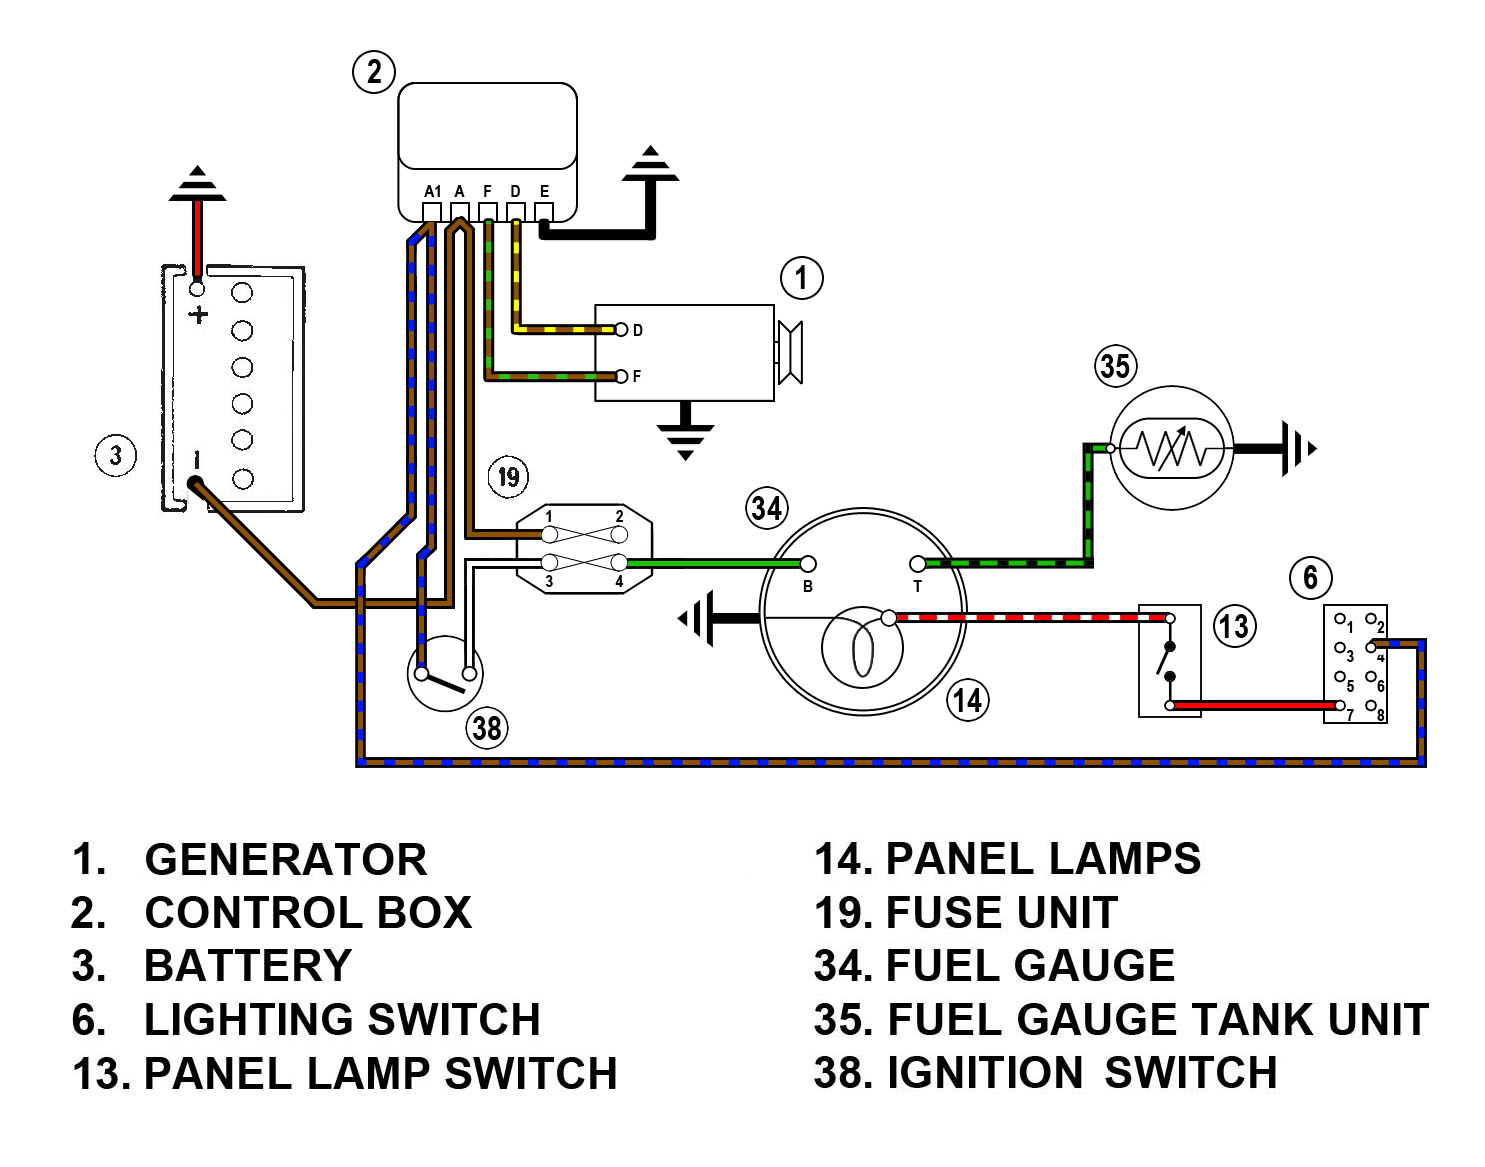 Honeywell T651a3018 Wiring Diagram Download Collection For Luxury Equus Fuel Gauge